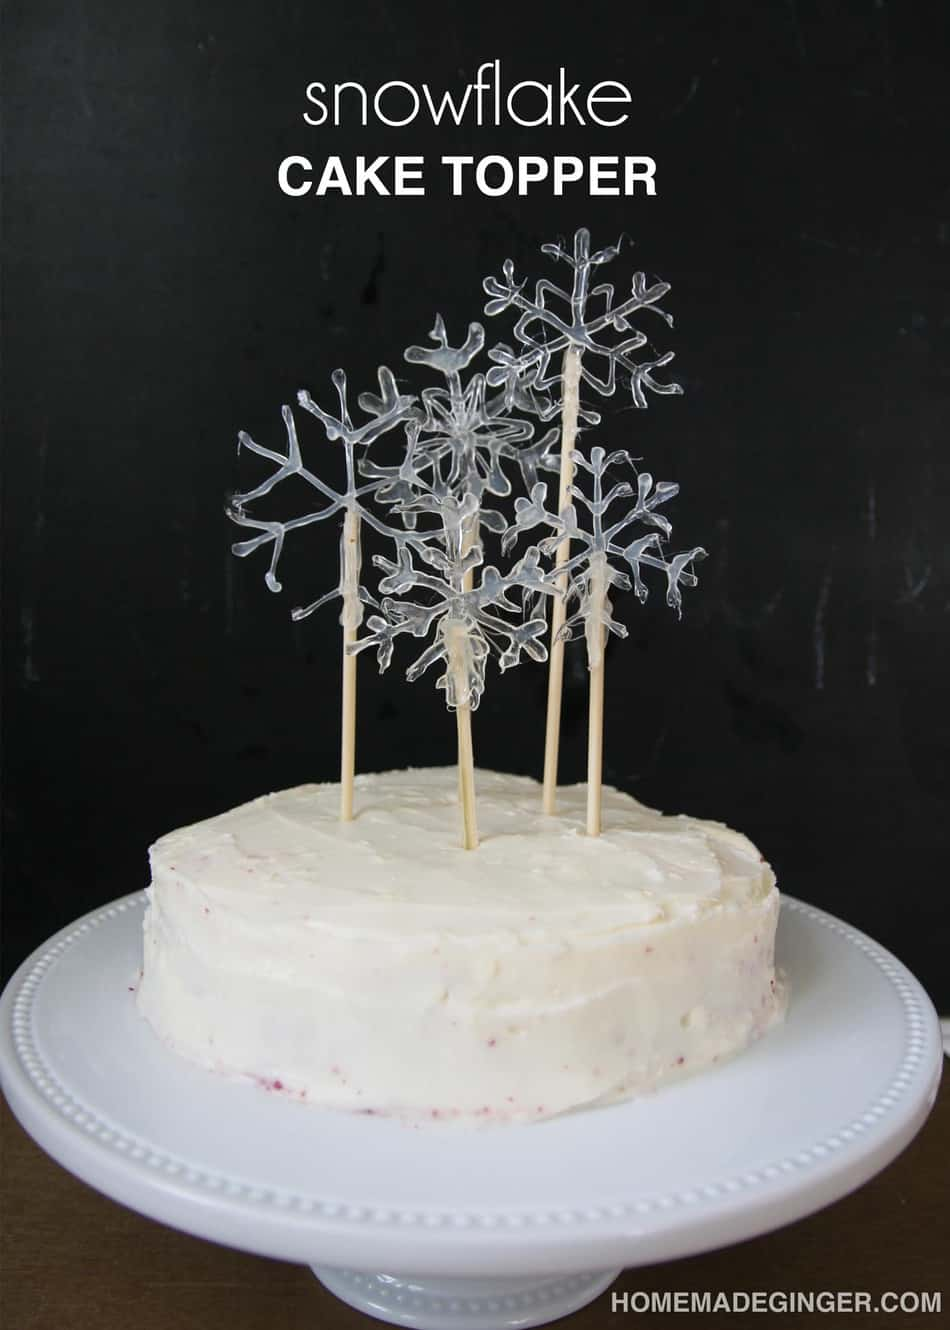 Make Some Snowflake Cake Toppers Using Hot Glue This Will A Beautiful Diy